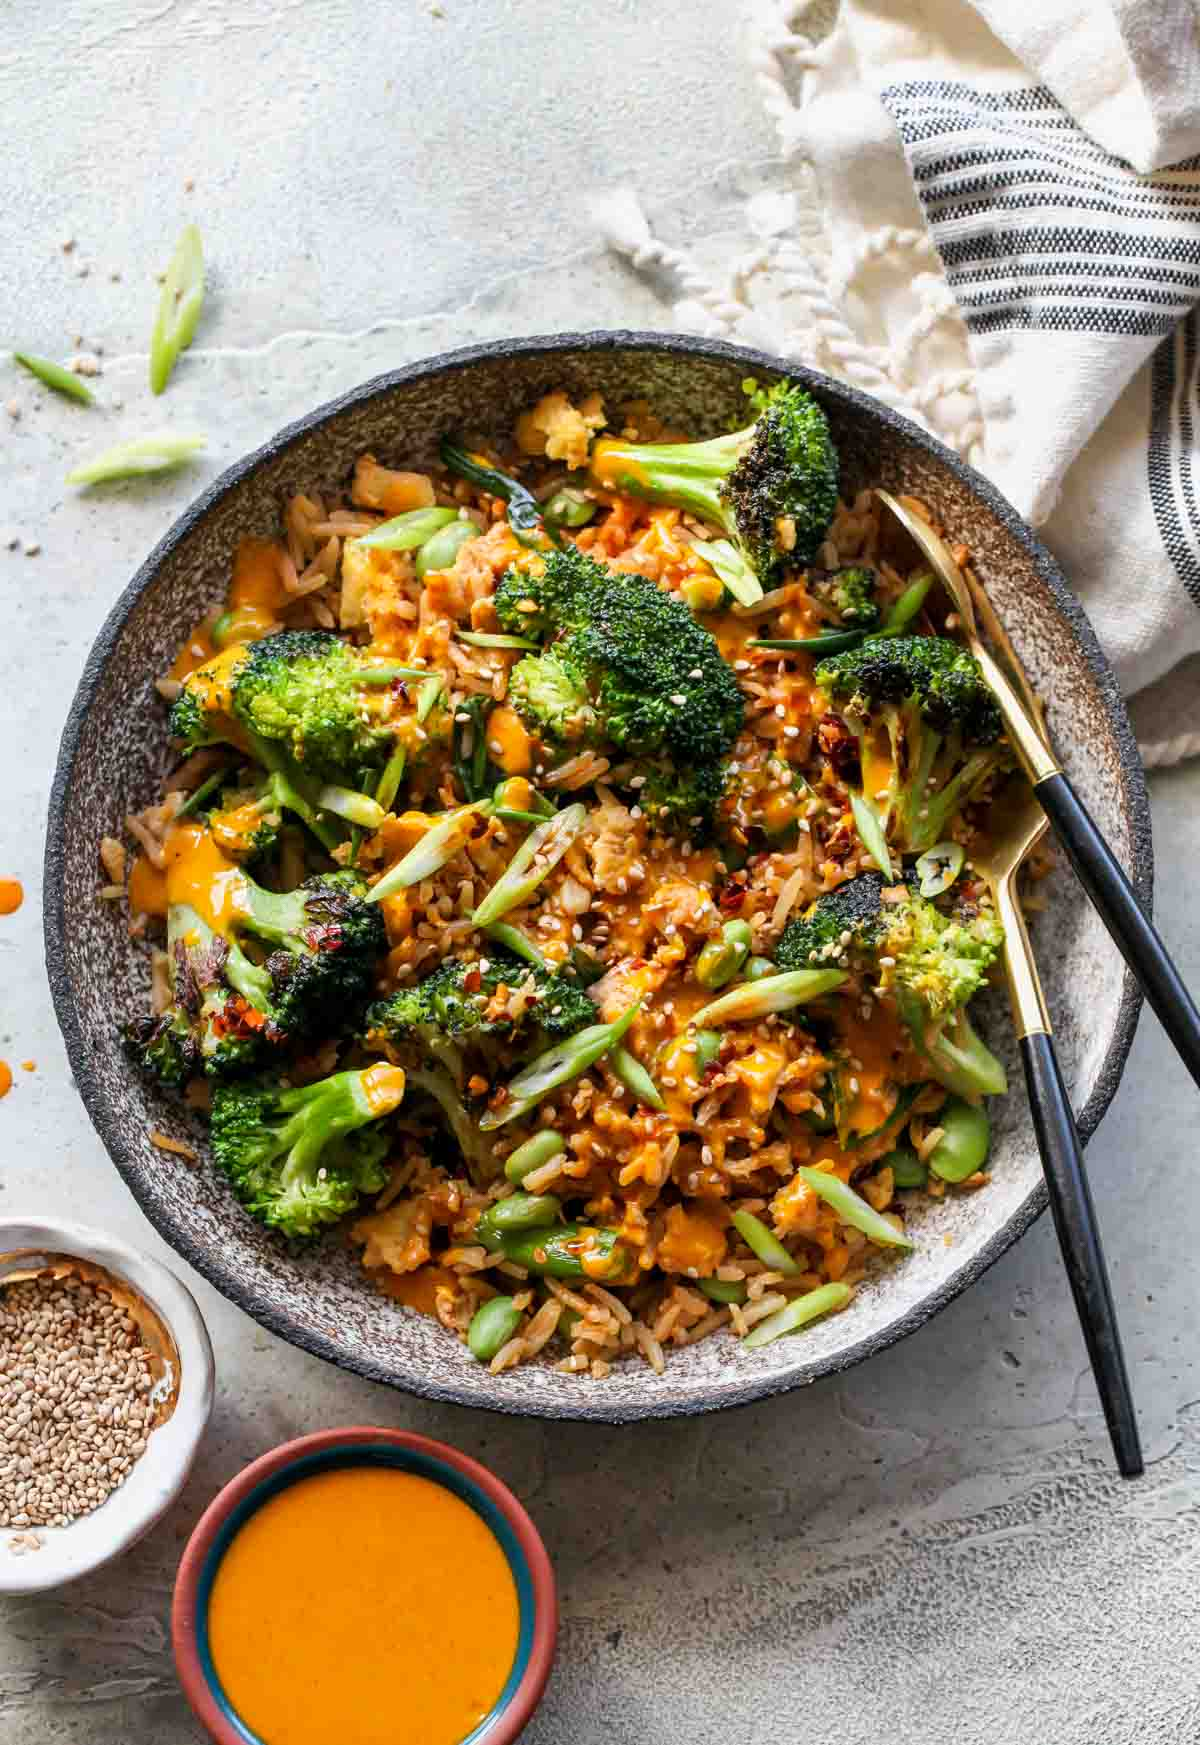 Single serving of broccoli fried rice in a bowl with serving utensils resting on the side